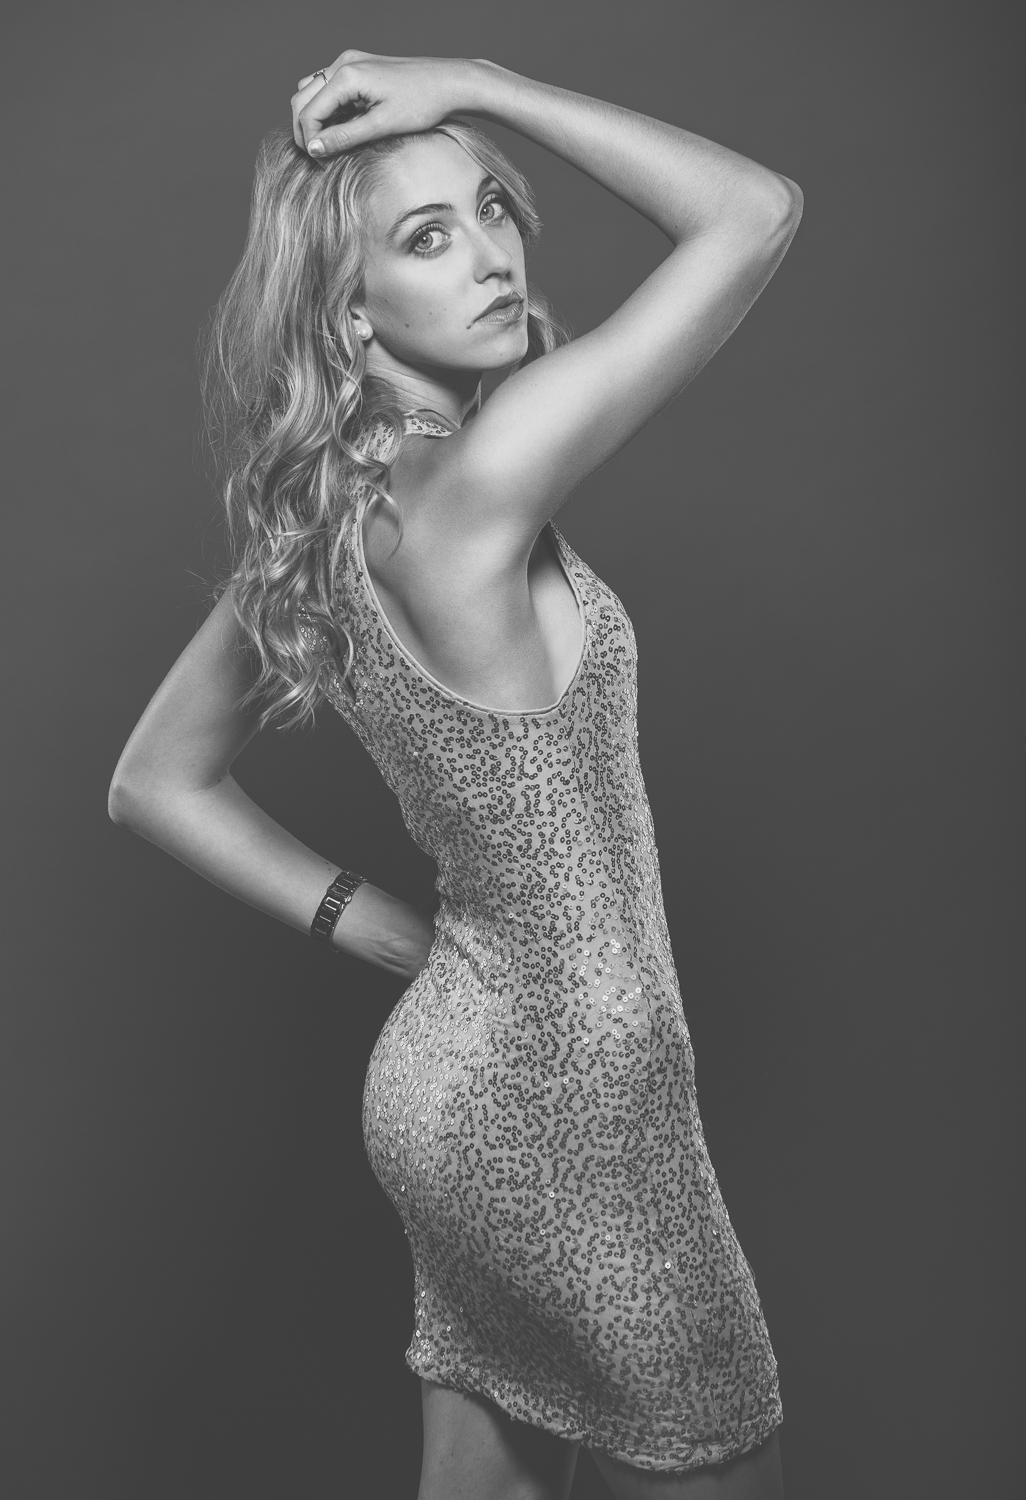 Aleah McCallum - Marek Michalek Photography Cocktail Dress Fashion Photographer Hamilton Toronto Black and White.jpg